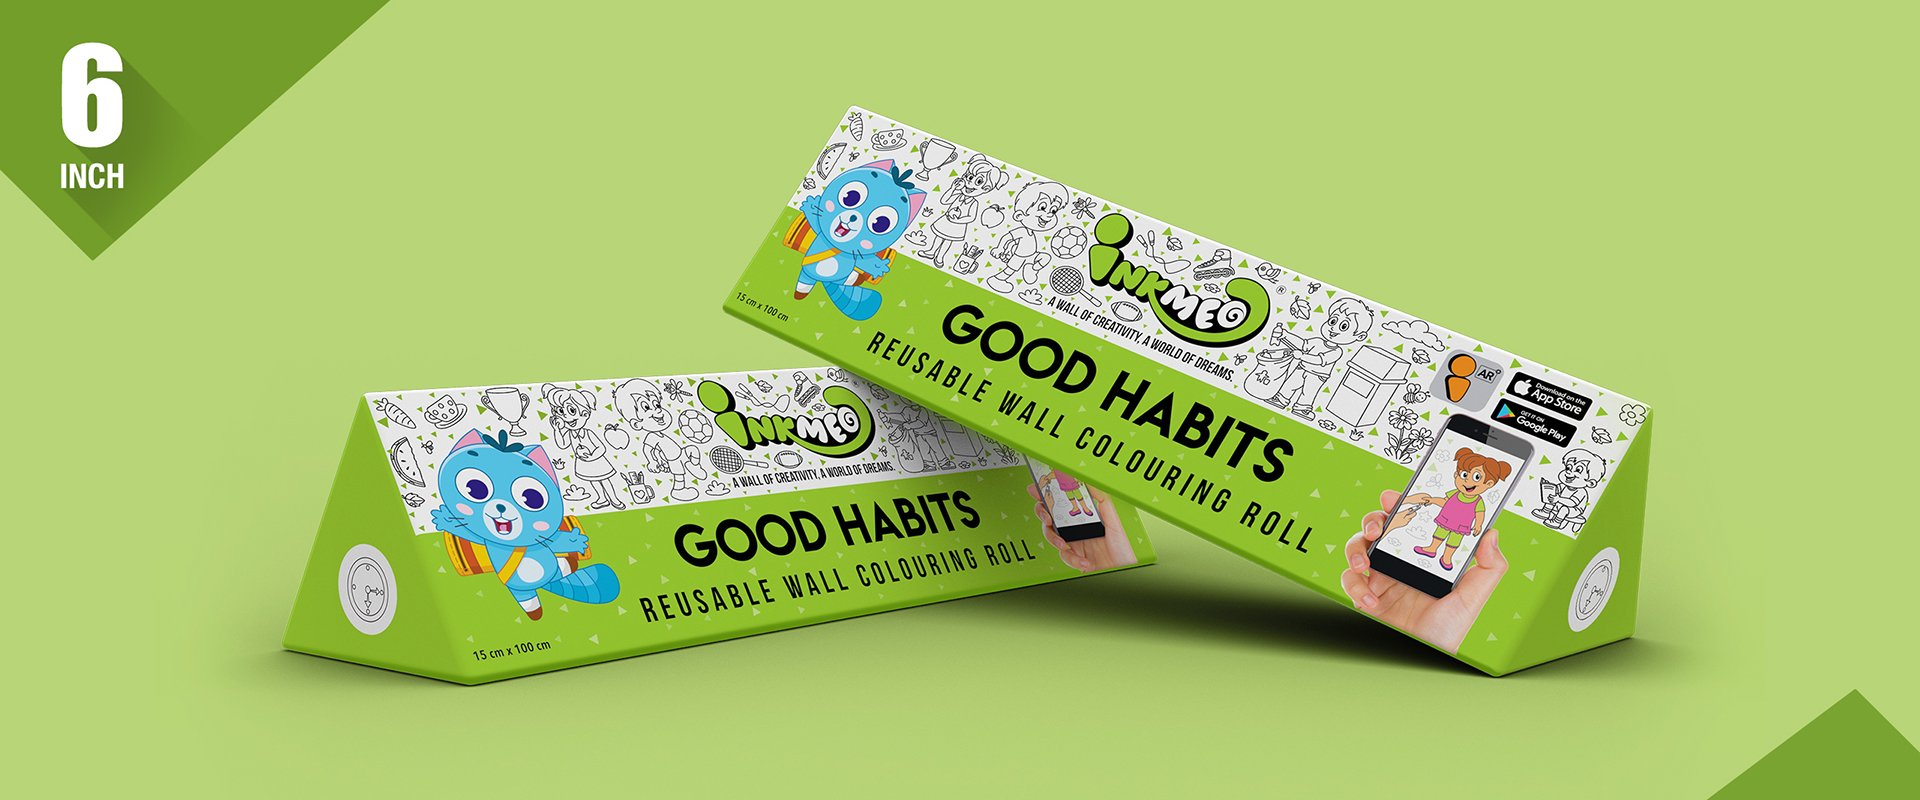 Good Habits Colouring Roll (6 inch)